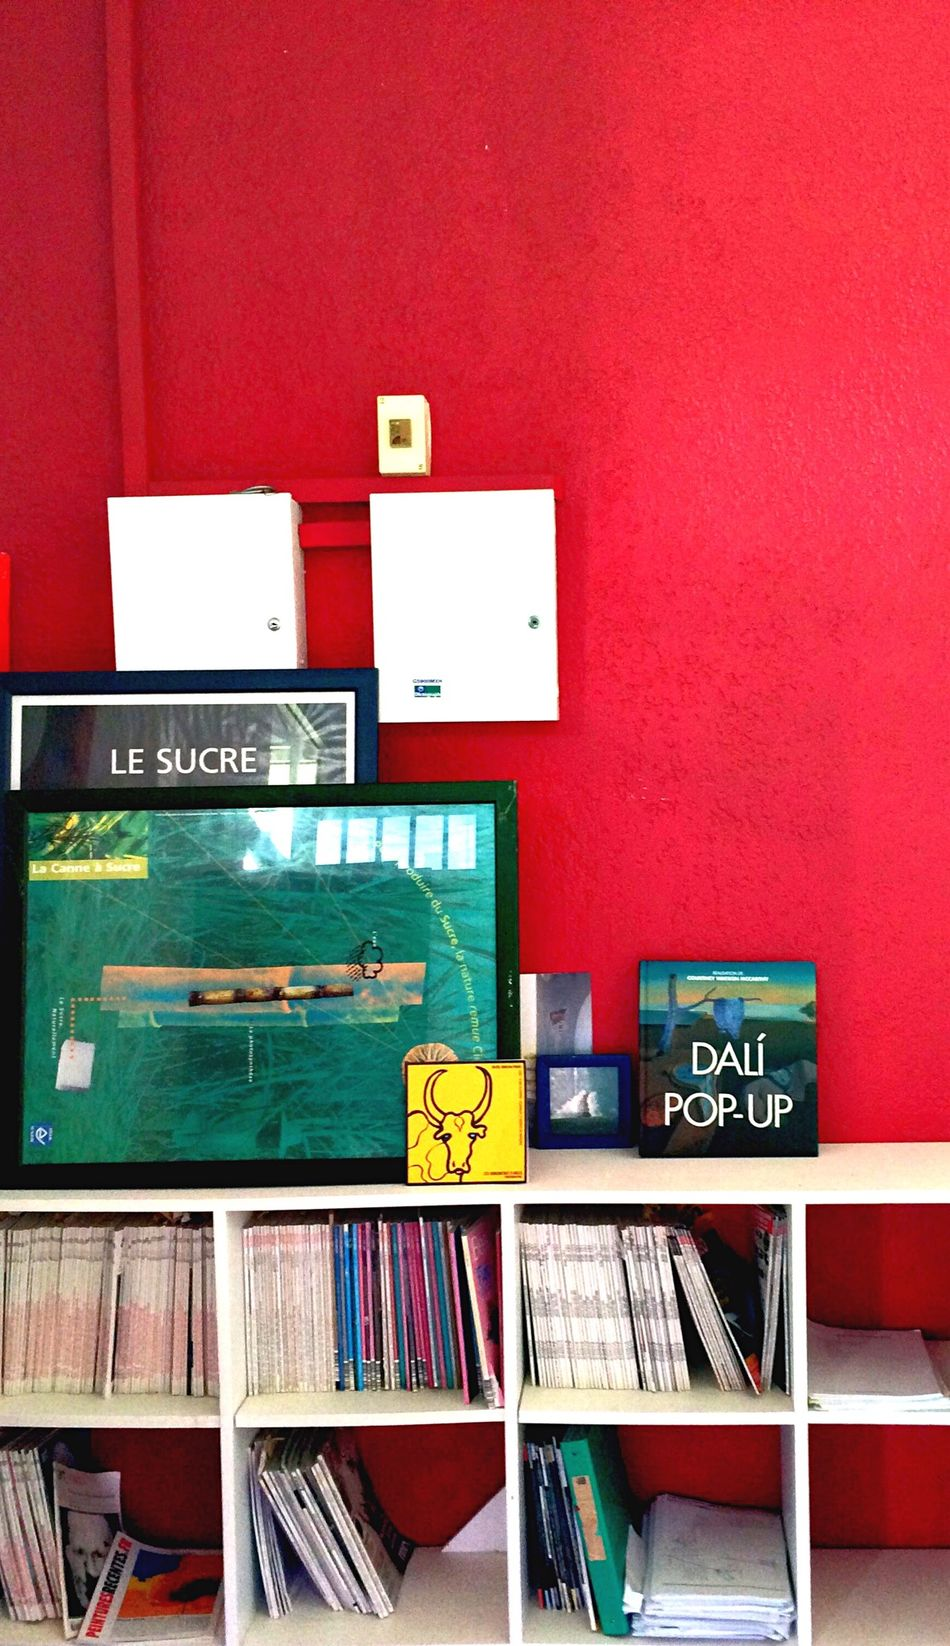 Everything In Its Place Red Wall Books Art Art Office Work Place Interior Views